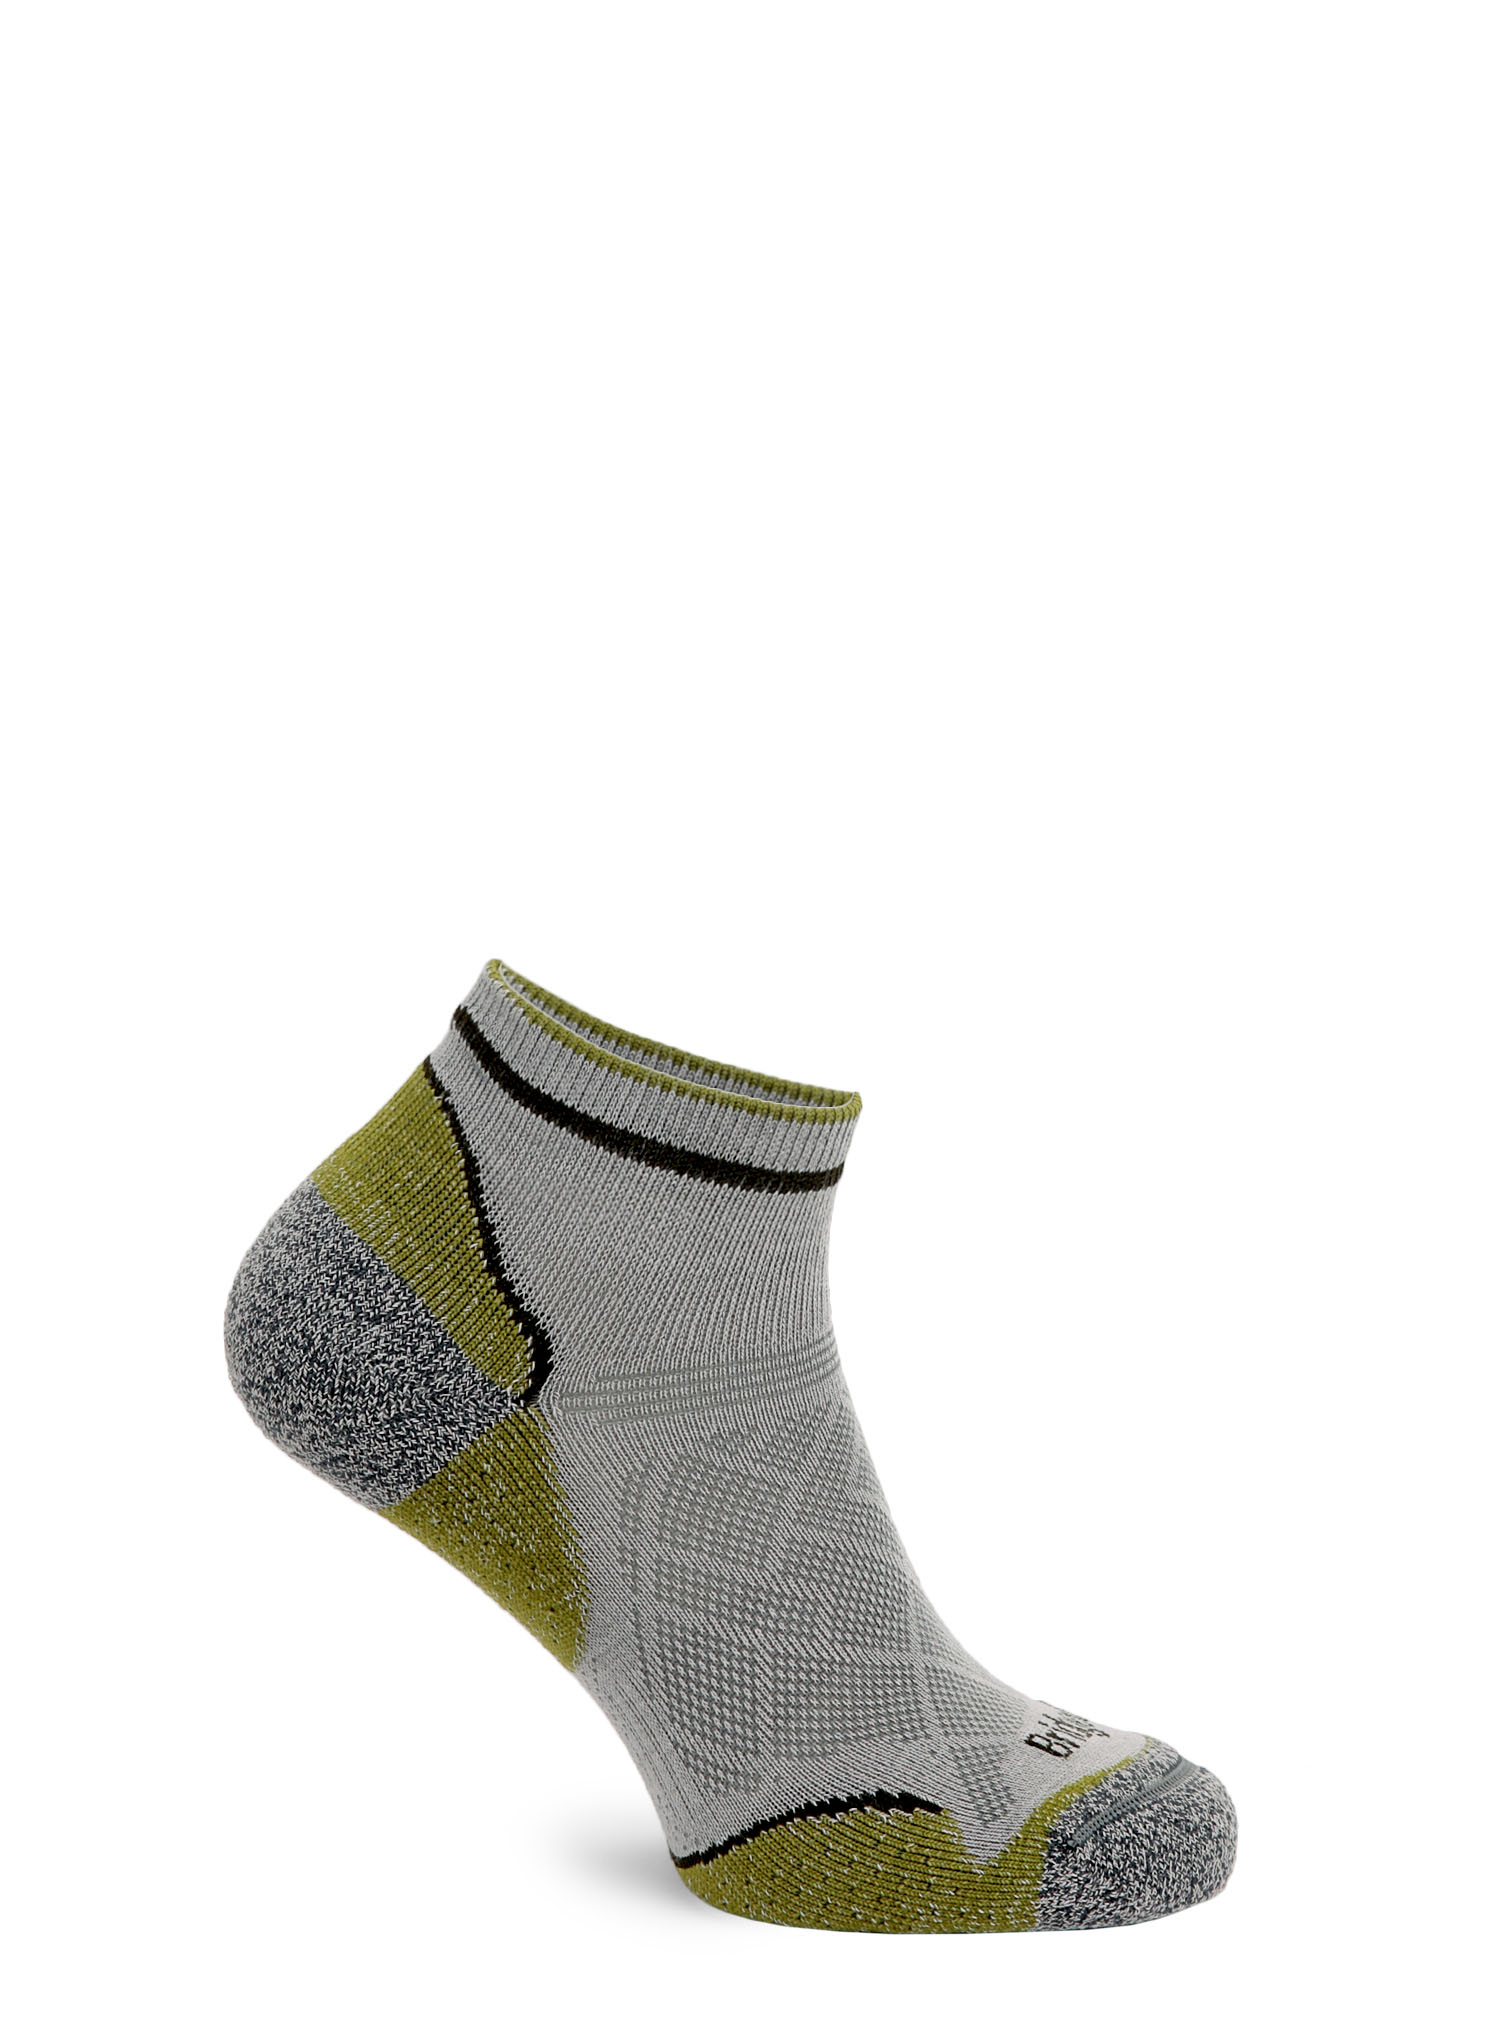 Skarpetki Bridgedale Hike Ultra Lt T2 Coolmax P Low - grey/green - zdjęcie nr. 4